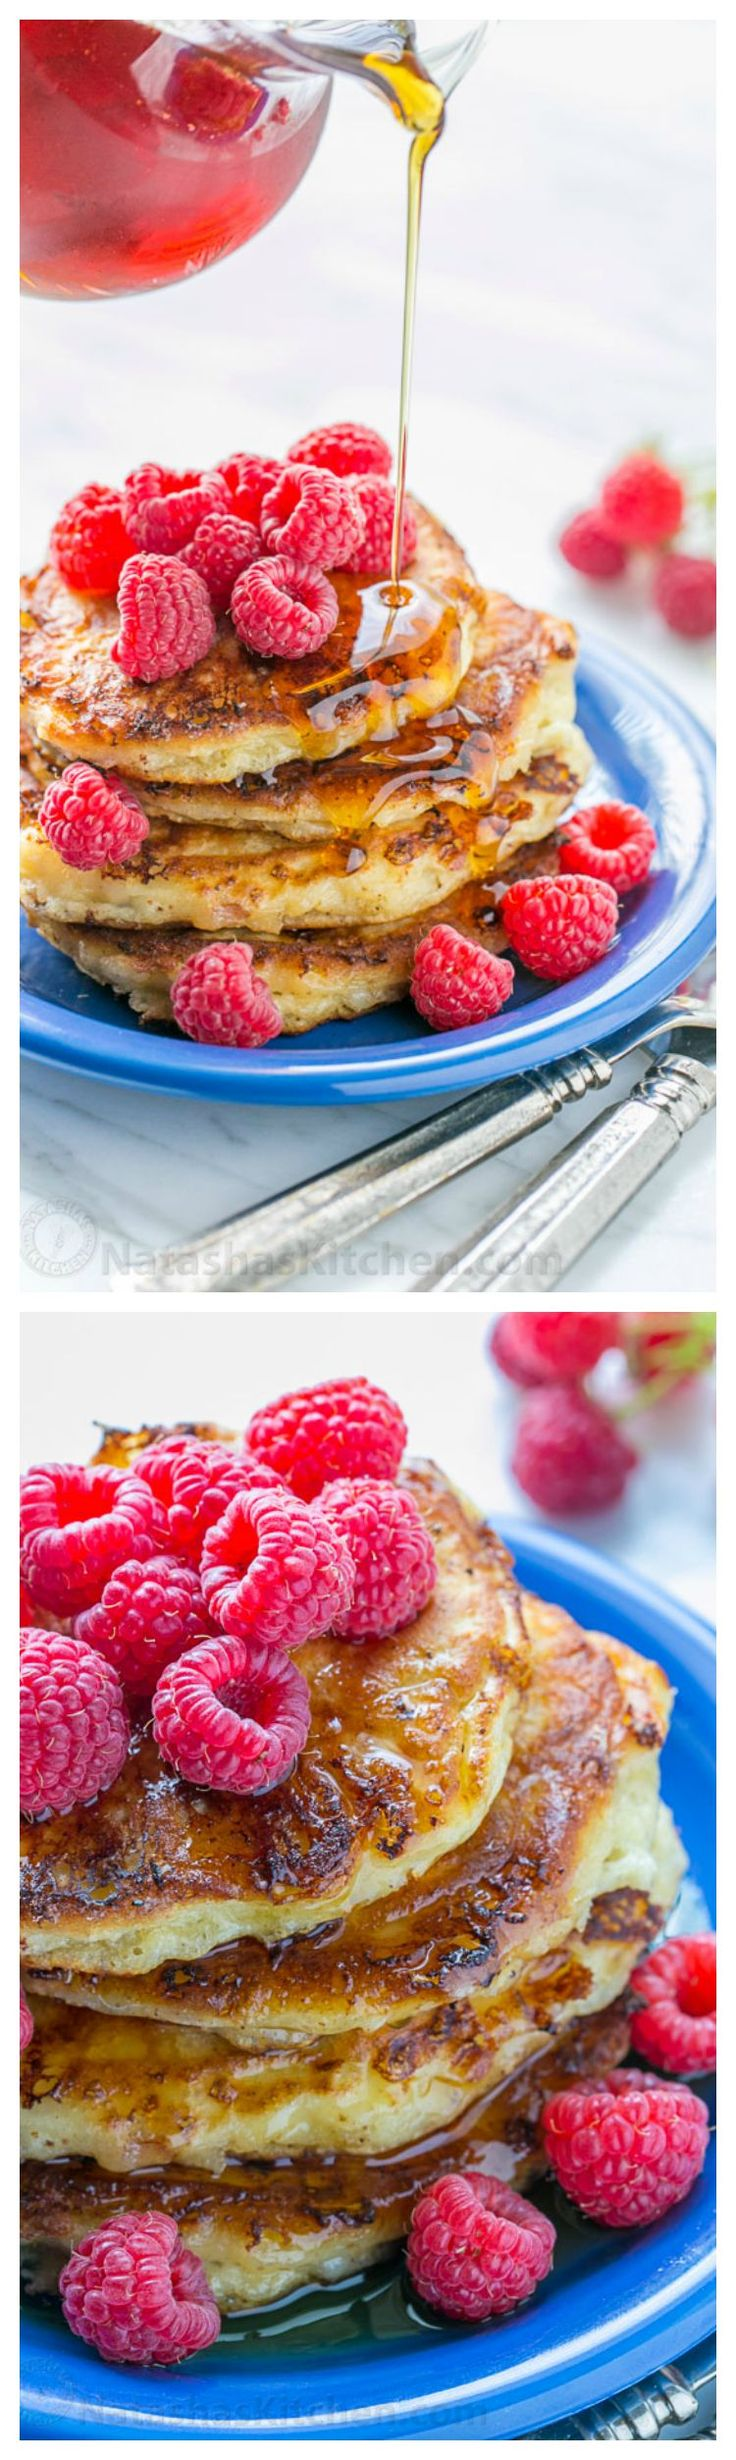 Fluffy Cottage Cheese Pancakes - simple ingredients, easy to make and they reheat really well! Try these cottage cheese pancakes! | natashaskitchen.com